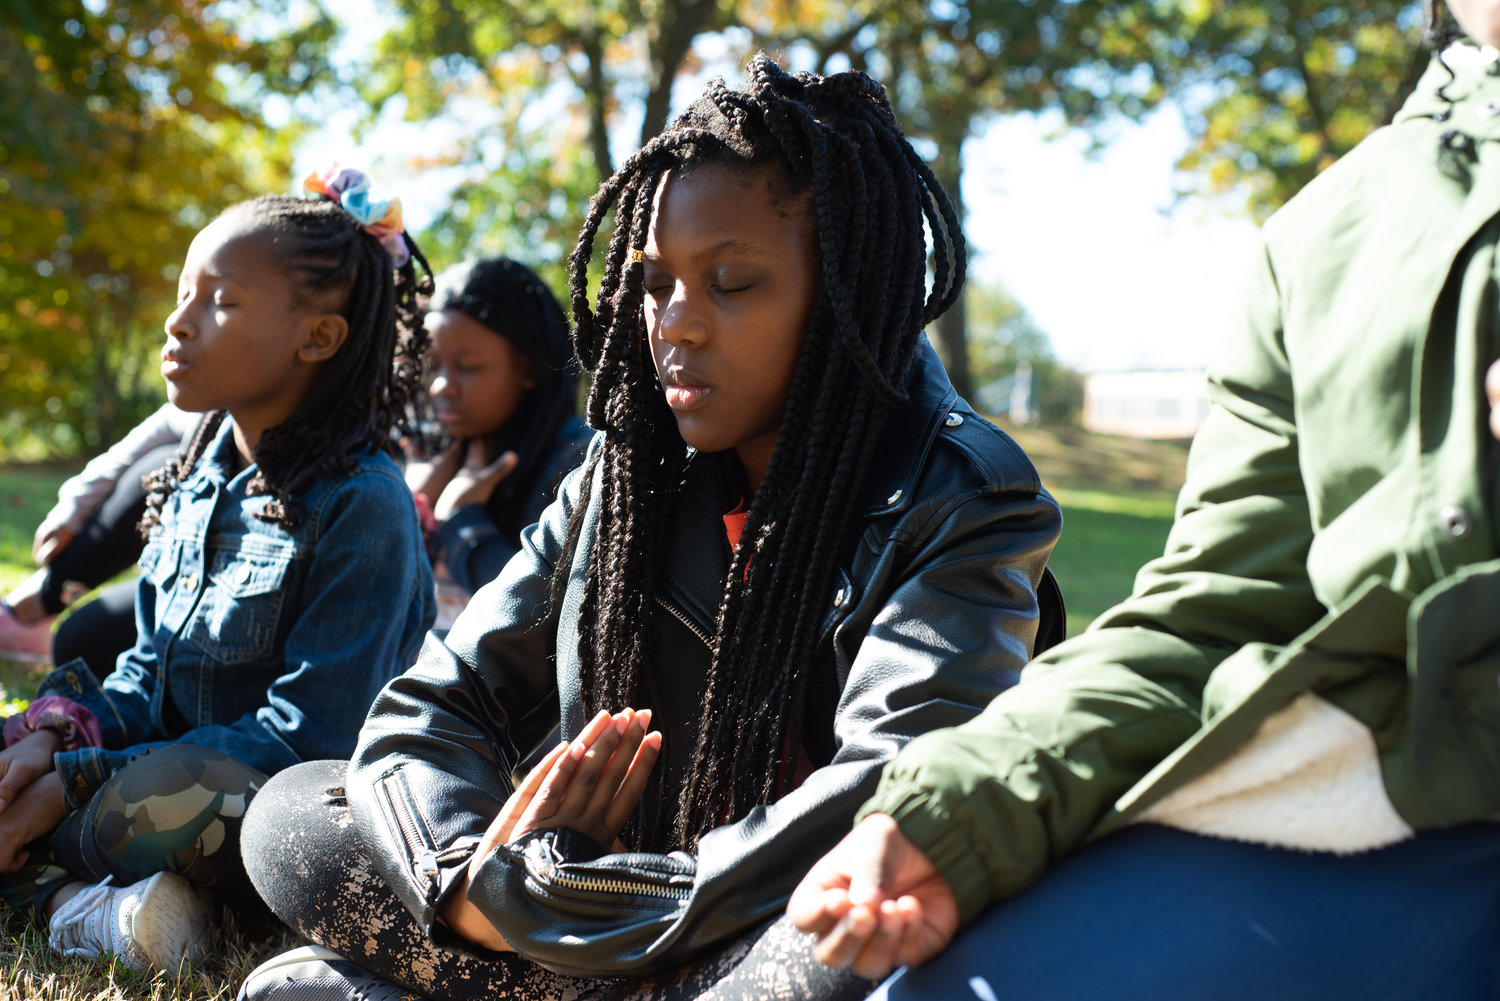 Supplemented by storytelling and a nature walk, students participated in group meditation.